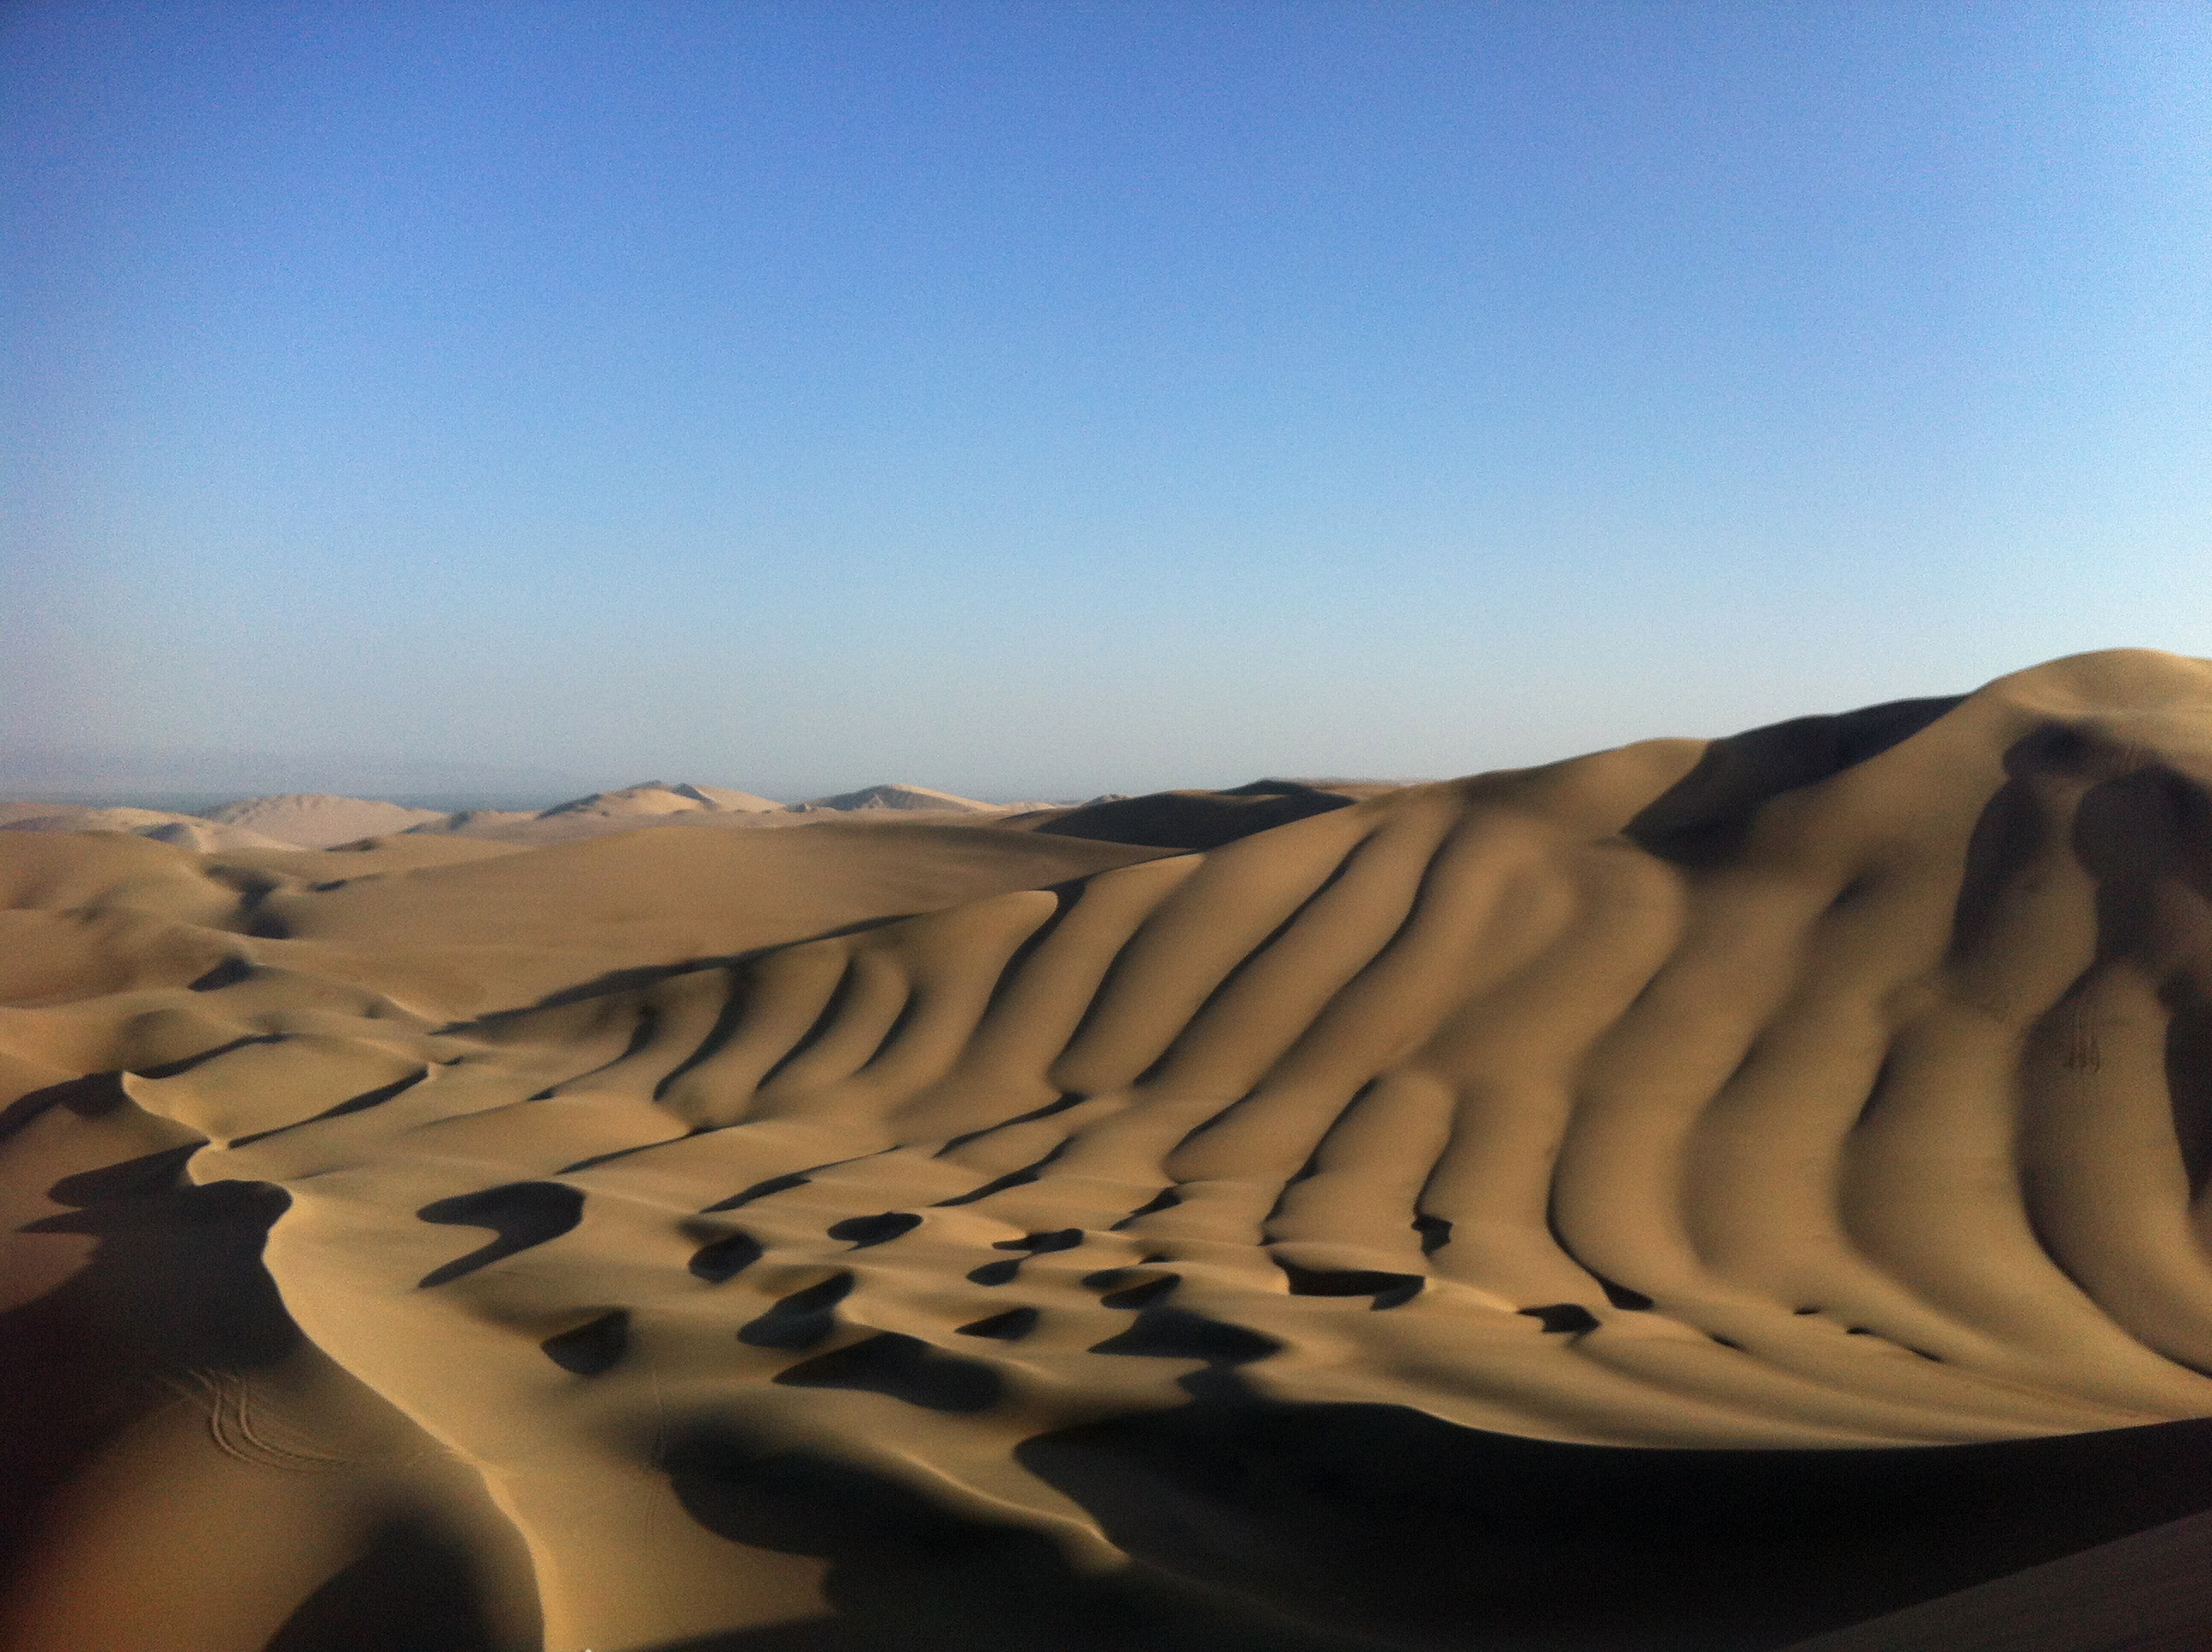 Sand Dunes | Photo by Wilson Carletti (All Rights Reserved)